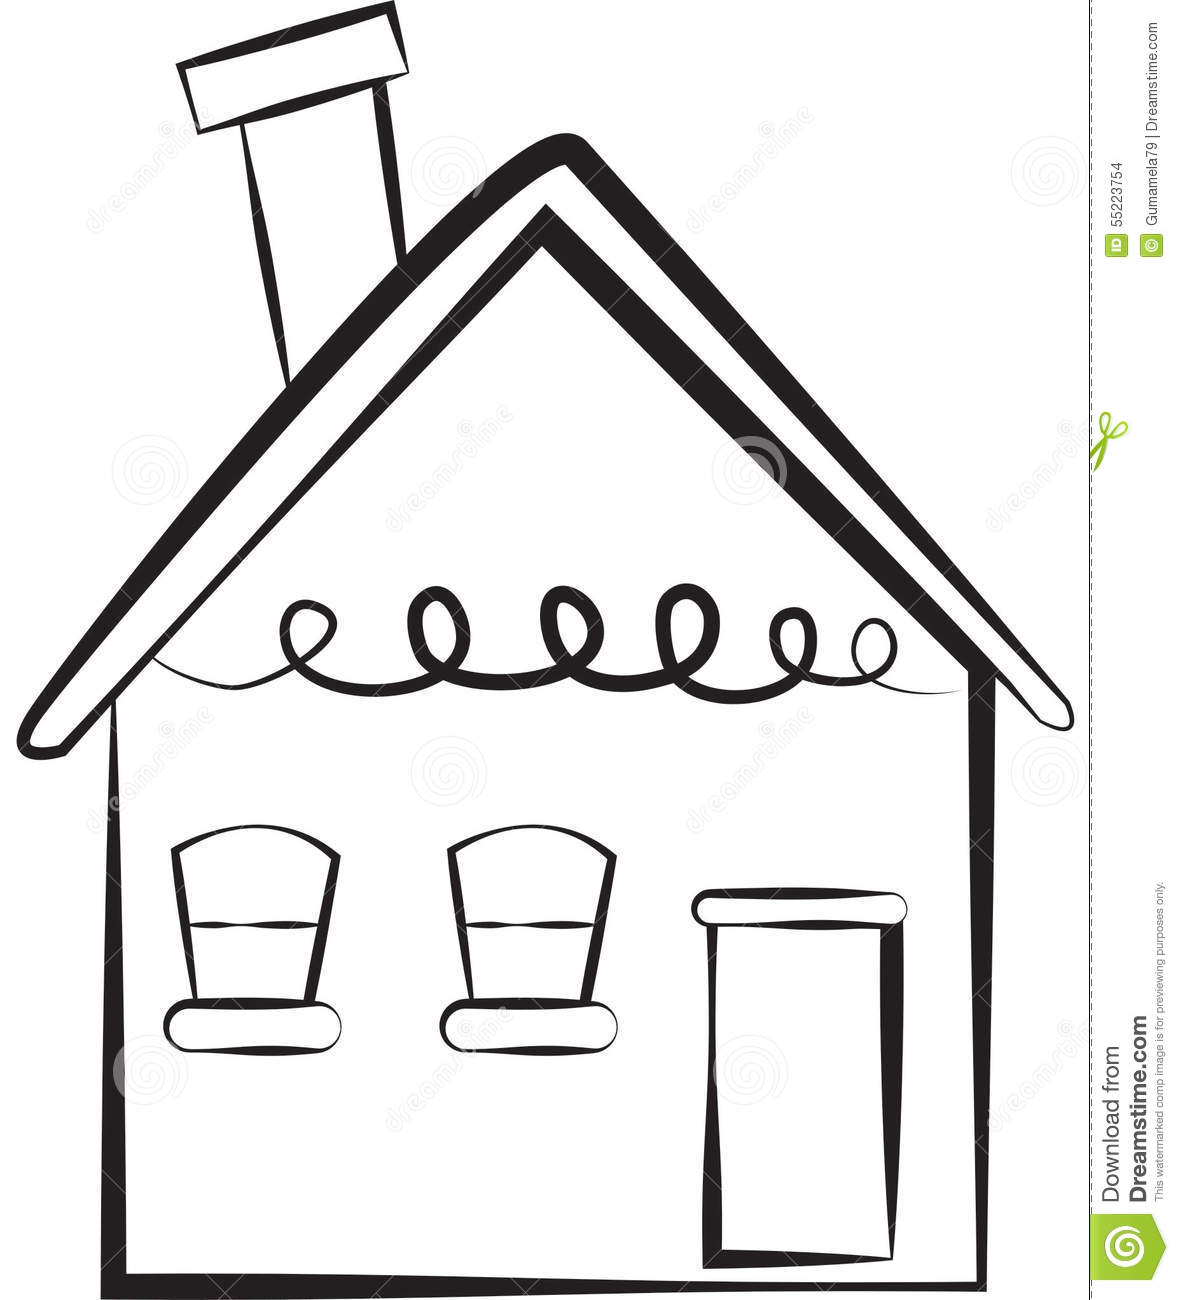 Stock image simple house stock illustration image 55223754 for Simple house image